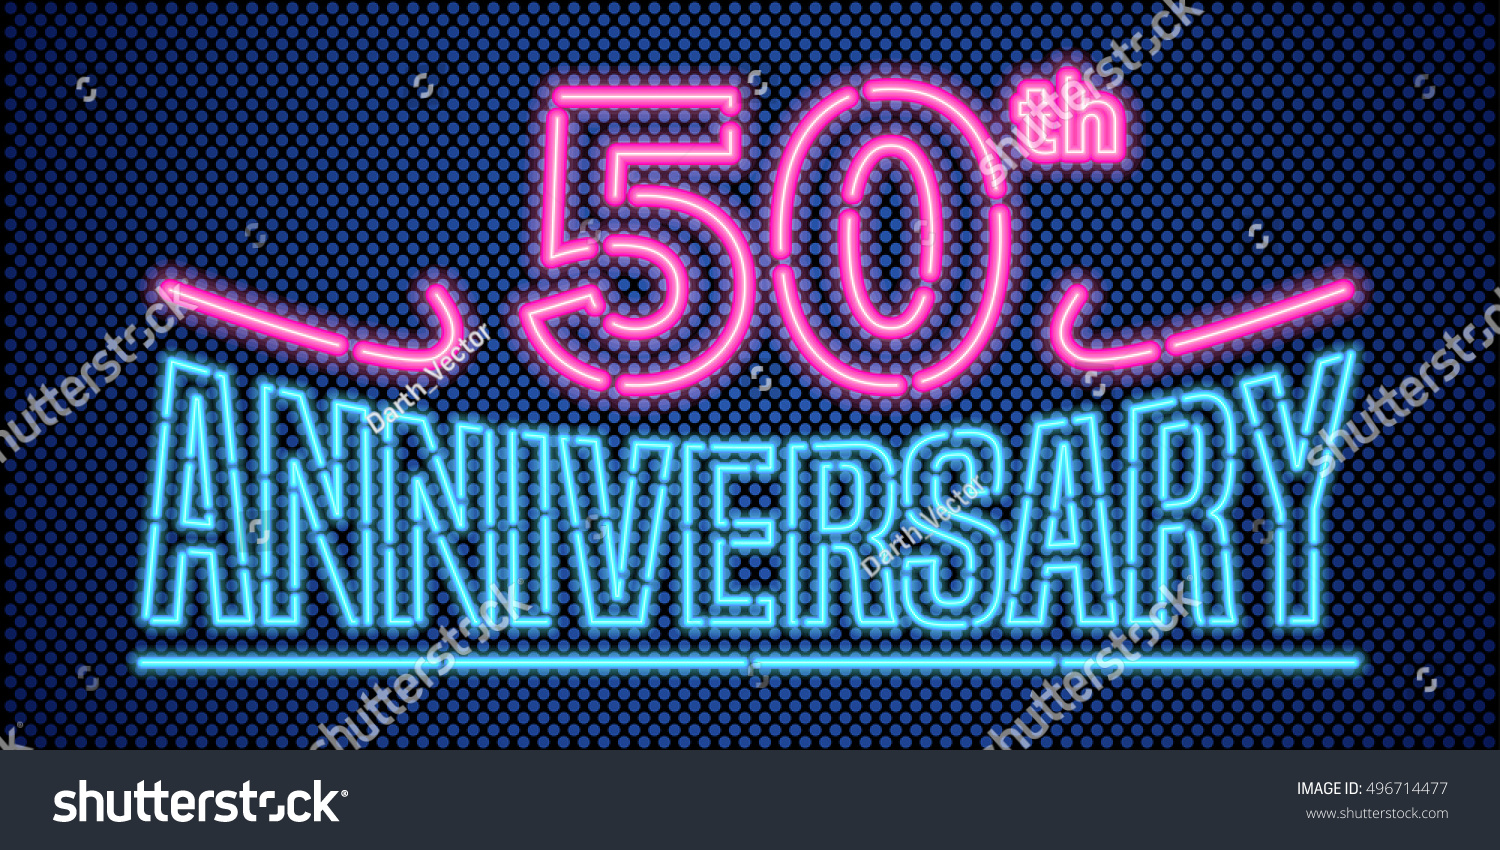 50 years anniversary vector illustration banner stock vector 50 years anniversary vector illustration banner flyer logo icon symbol buycottarizona Choice Image